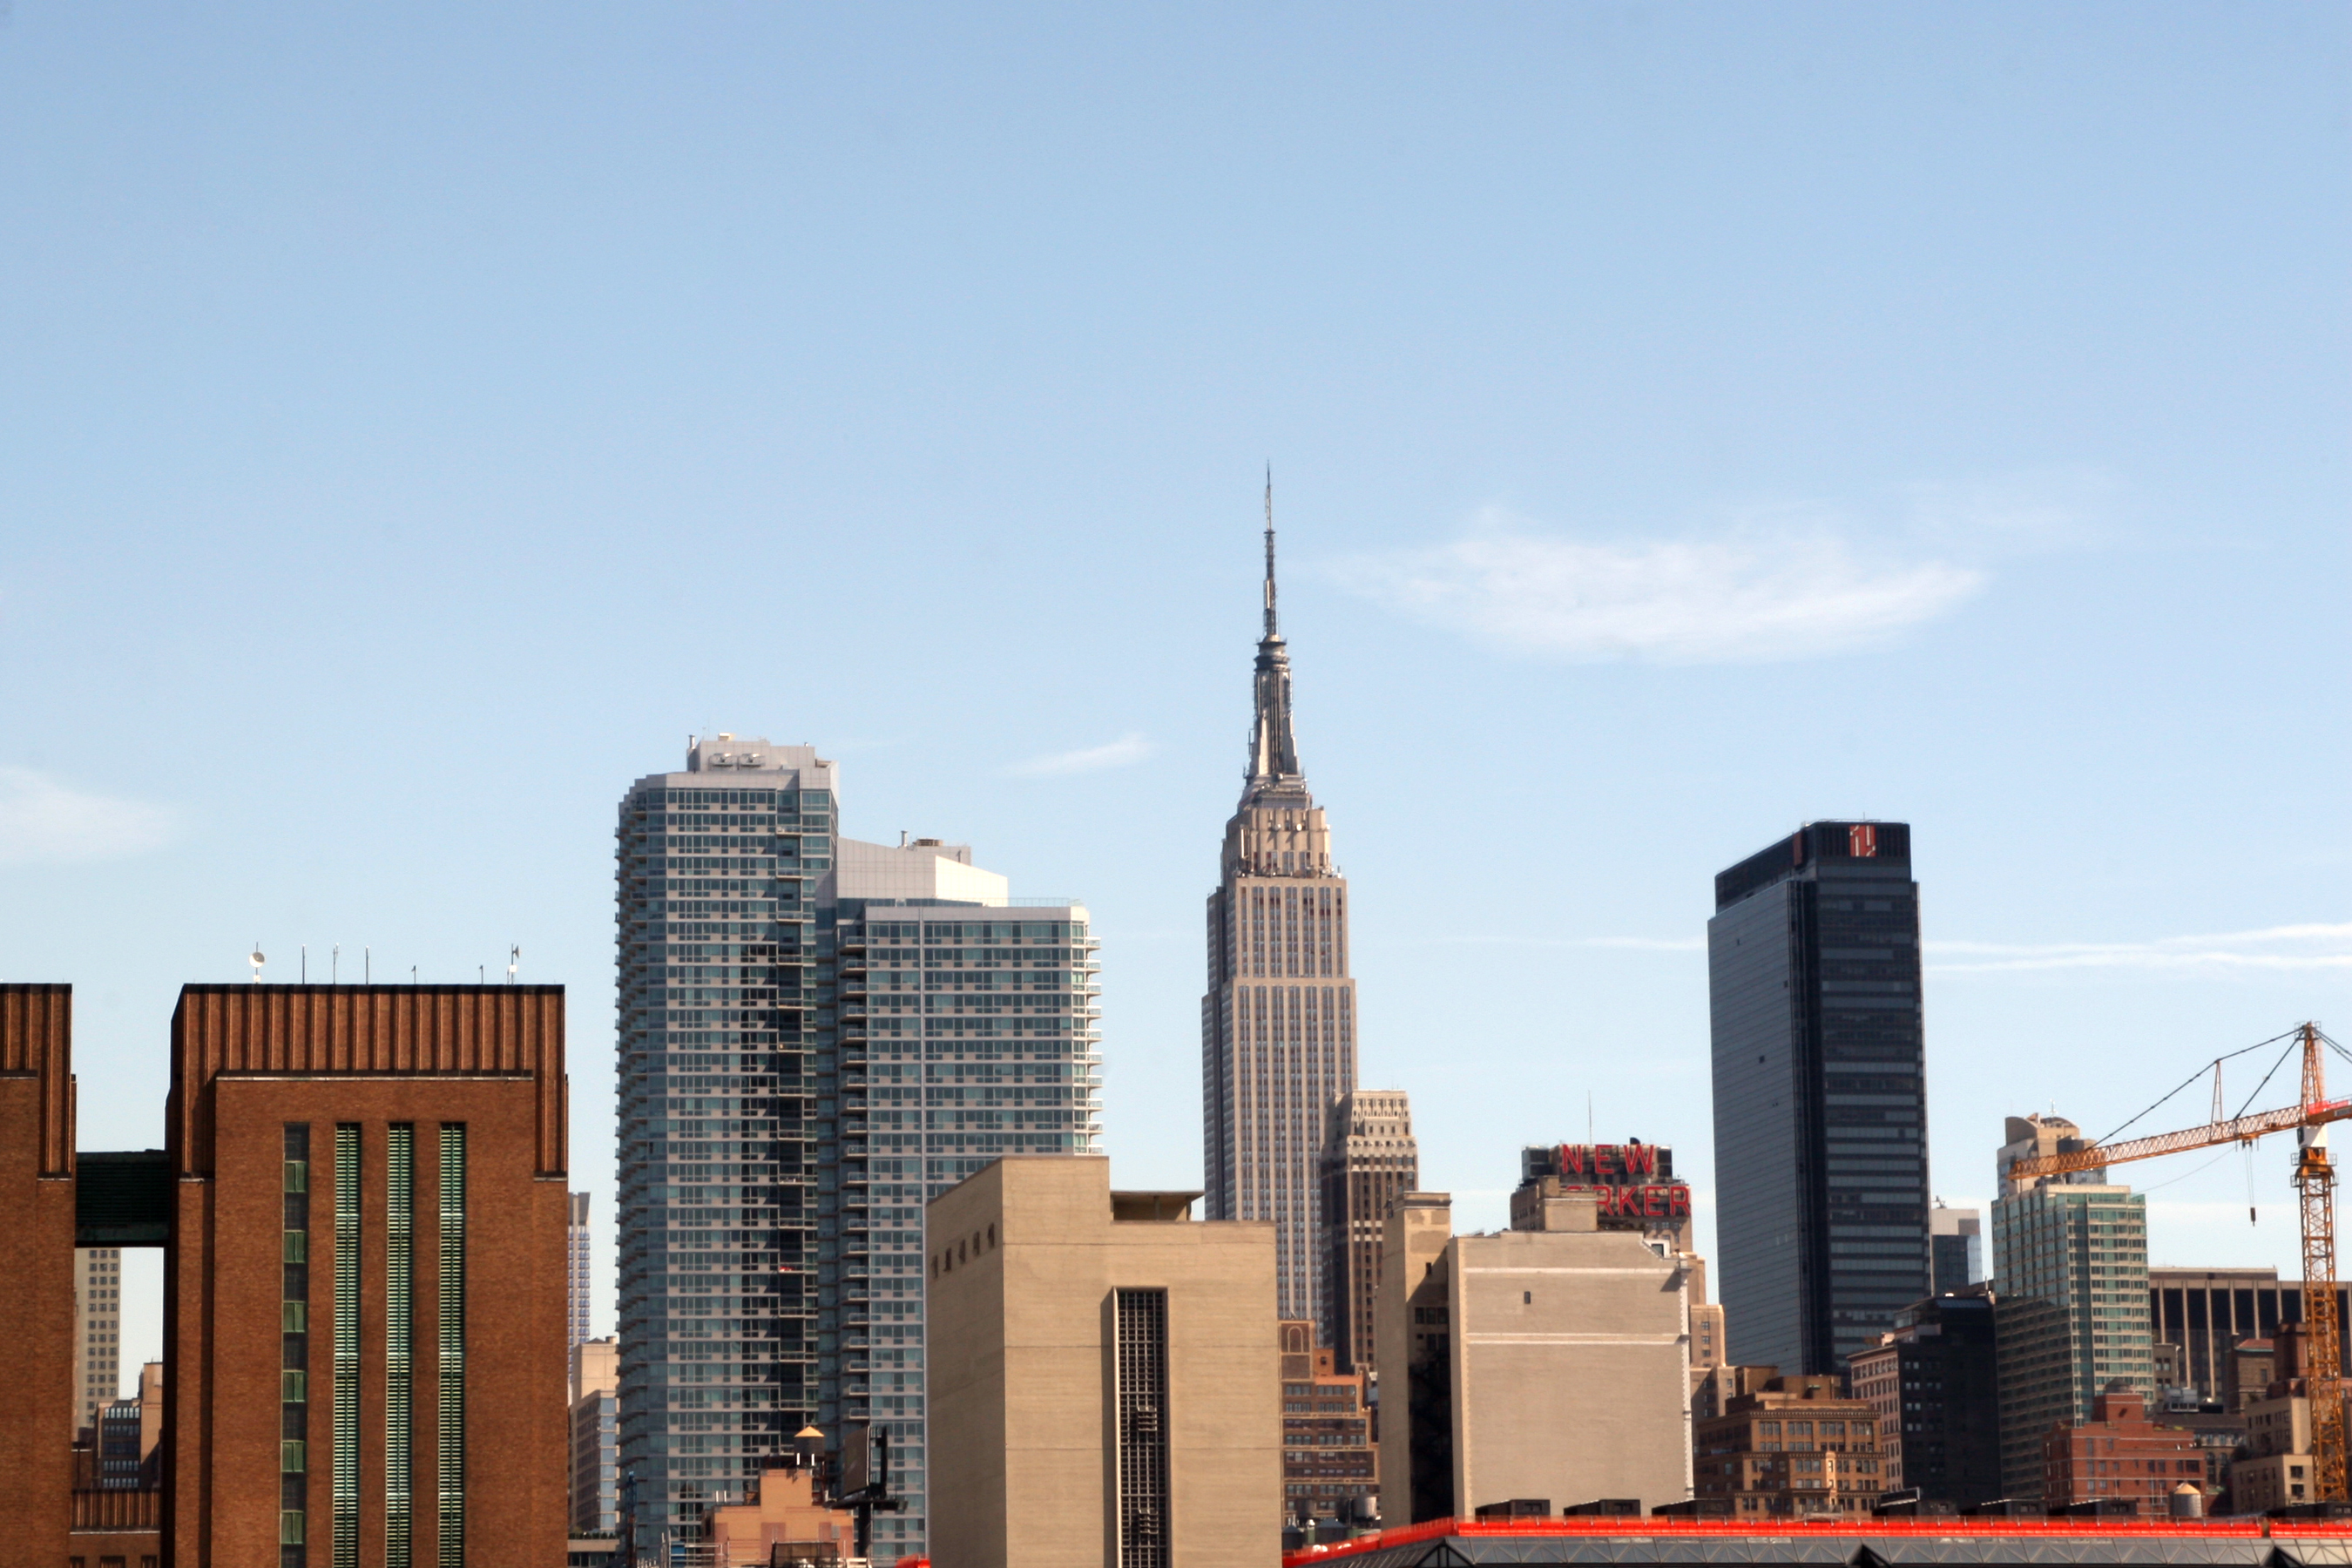 Description new york city skyline with empire state building 1